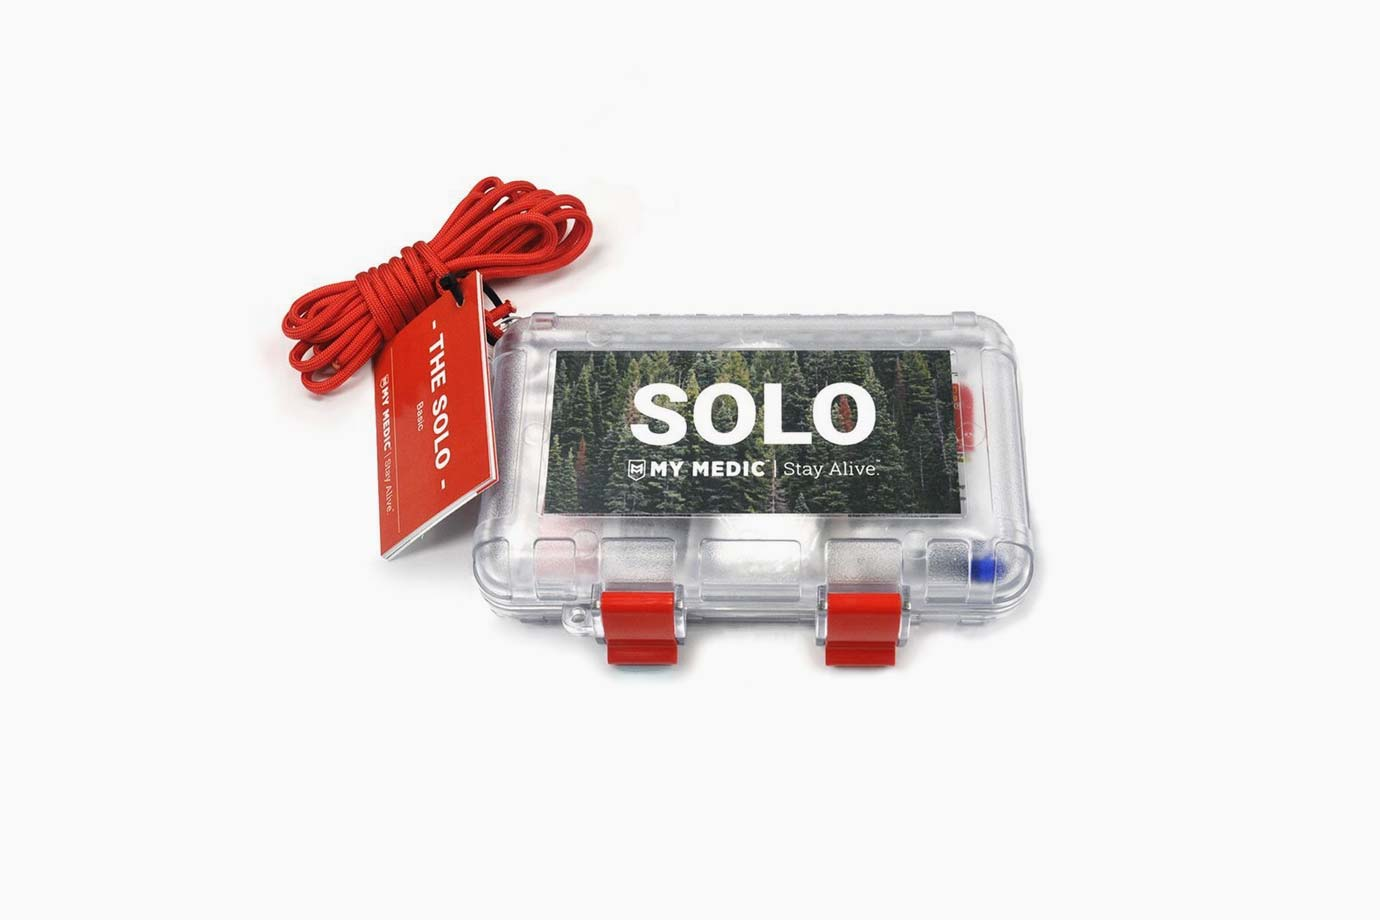 THE SOLO FIRST AID KIT - My Medic